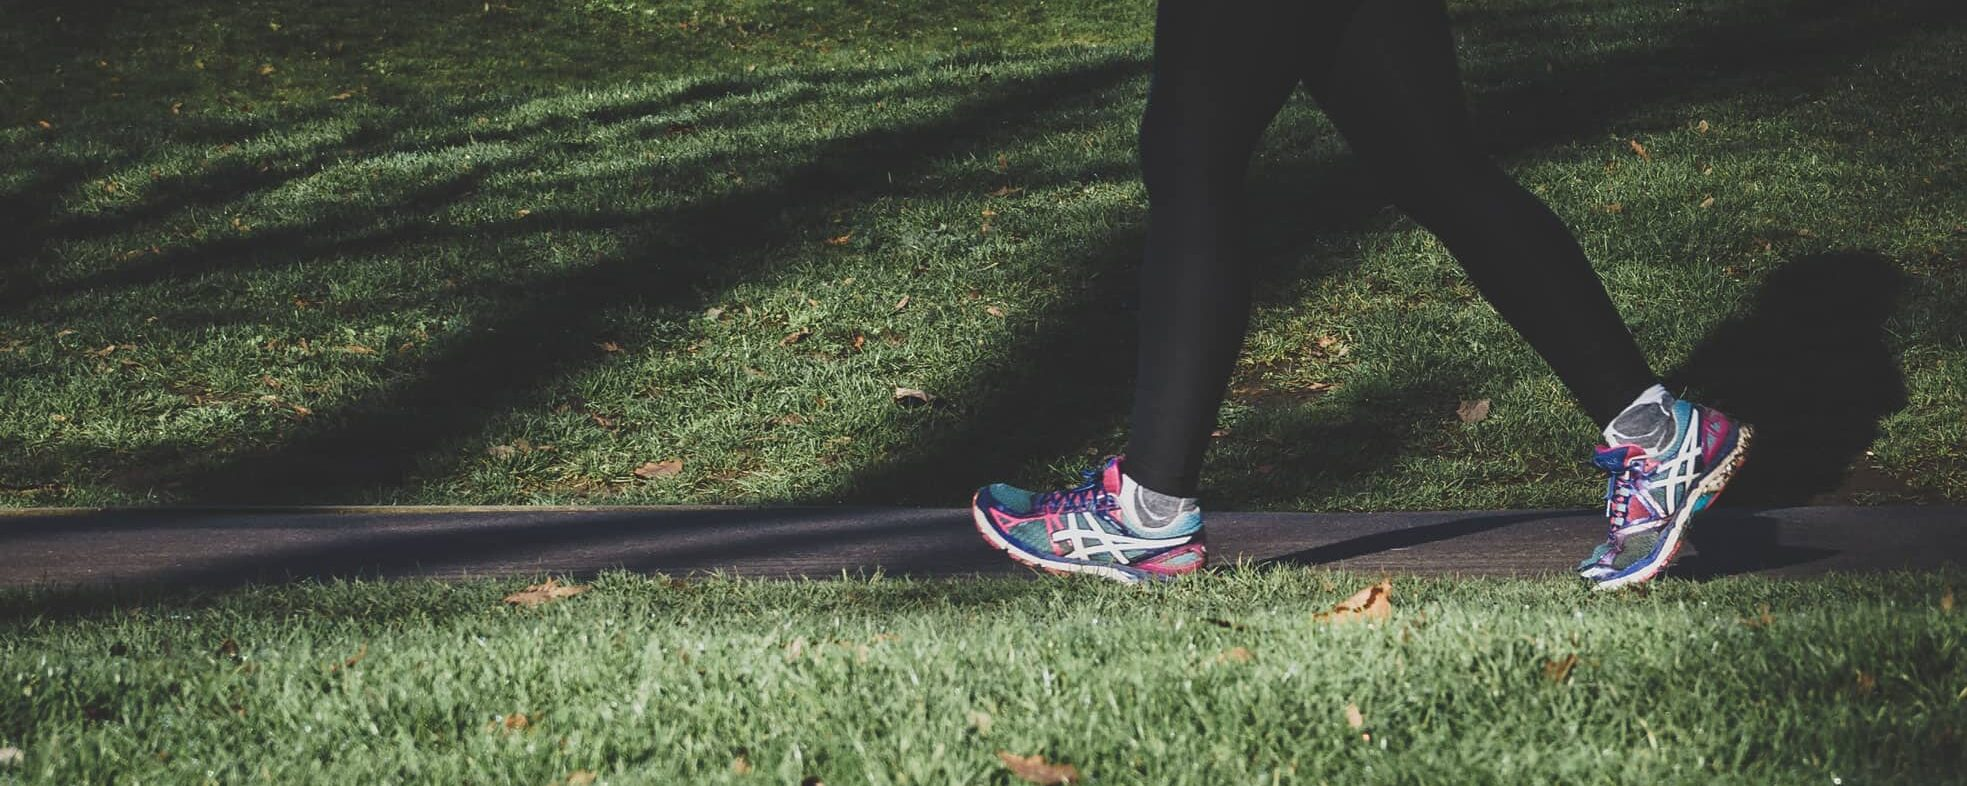 How Much Should You Walk for Weight Loss?